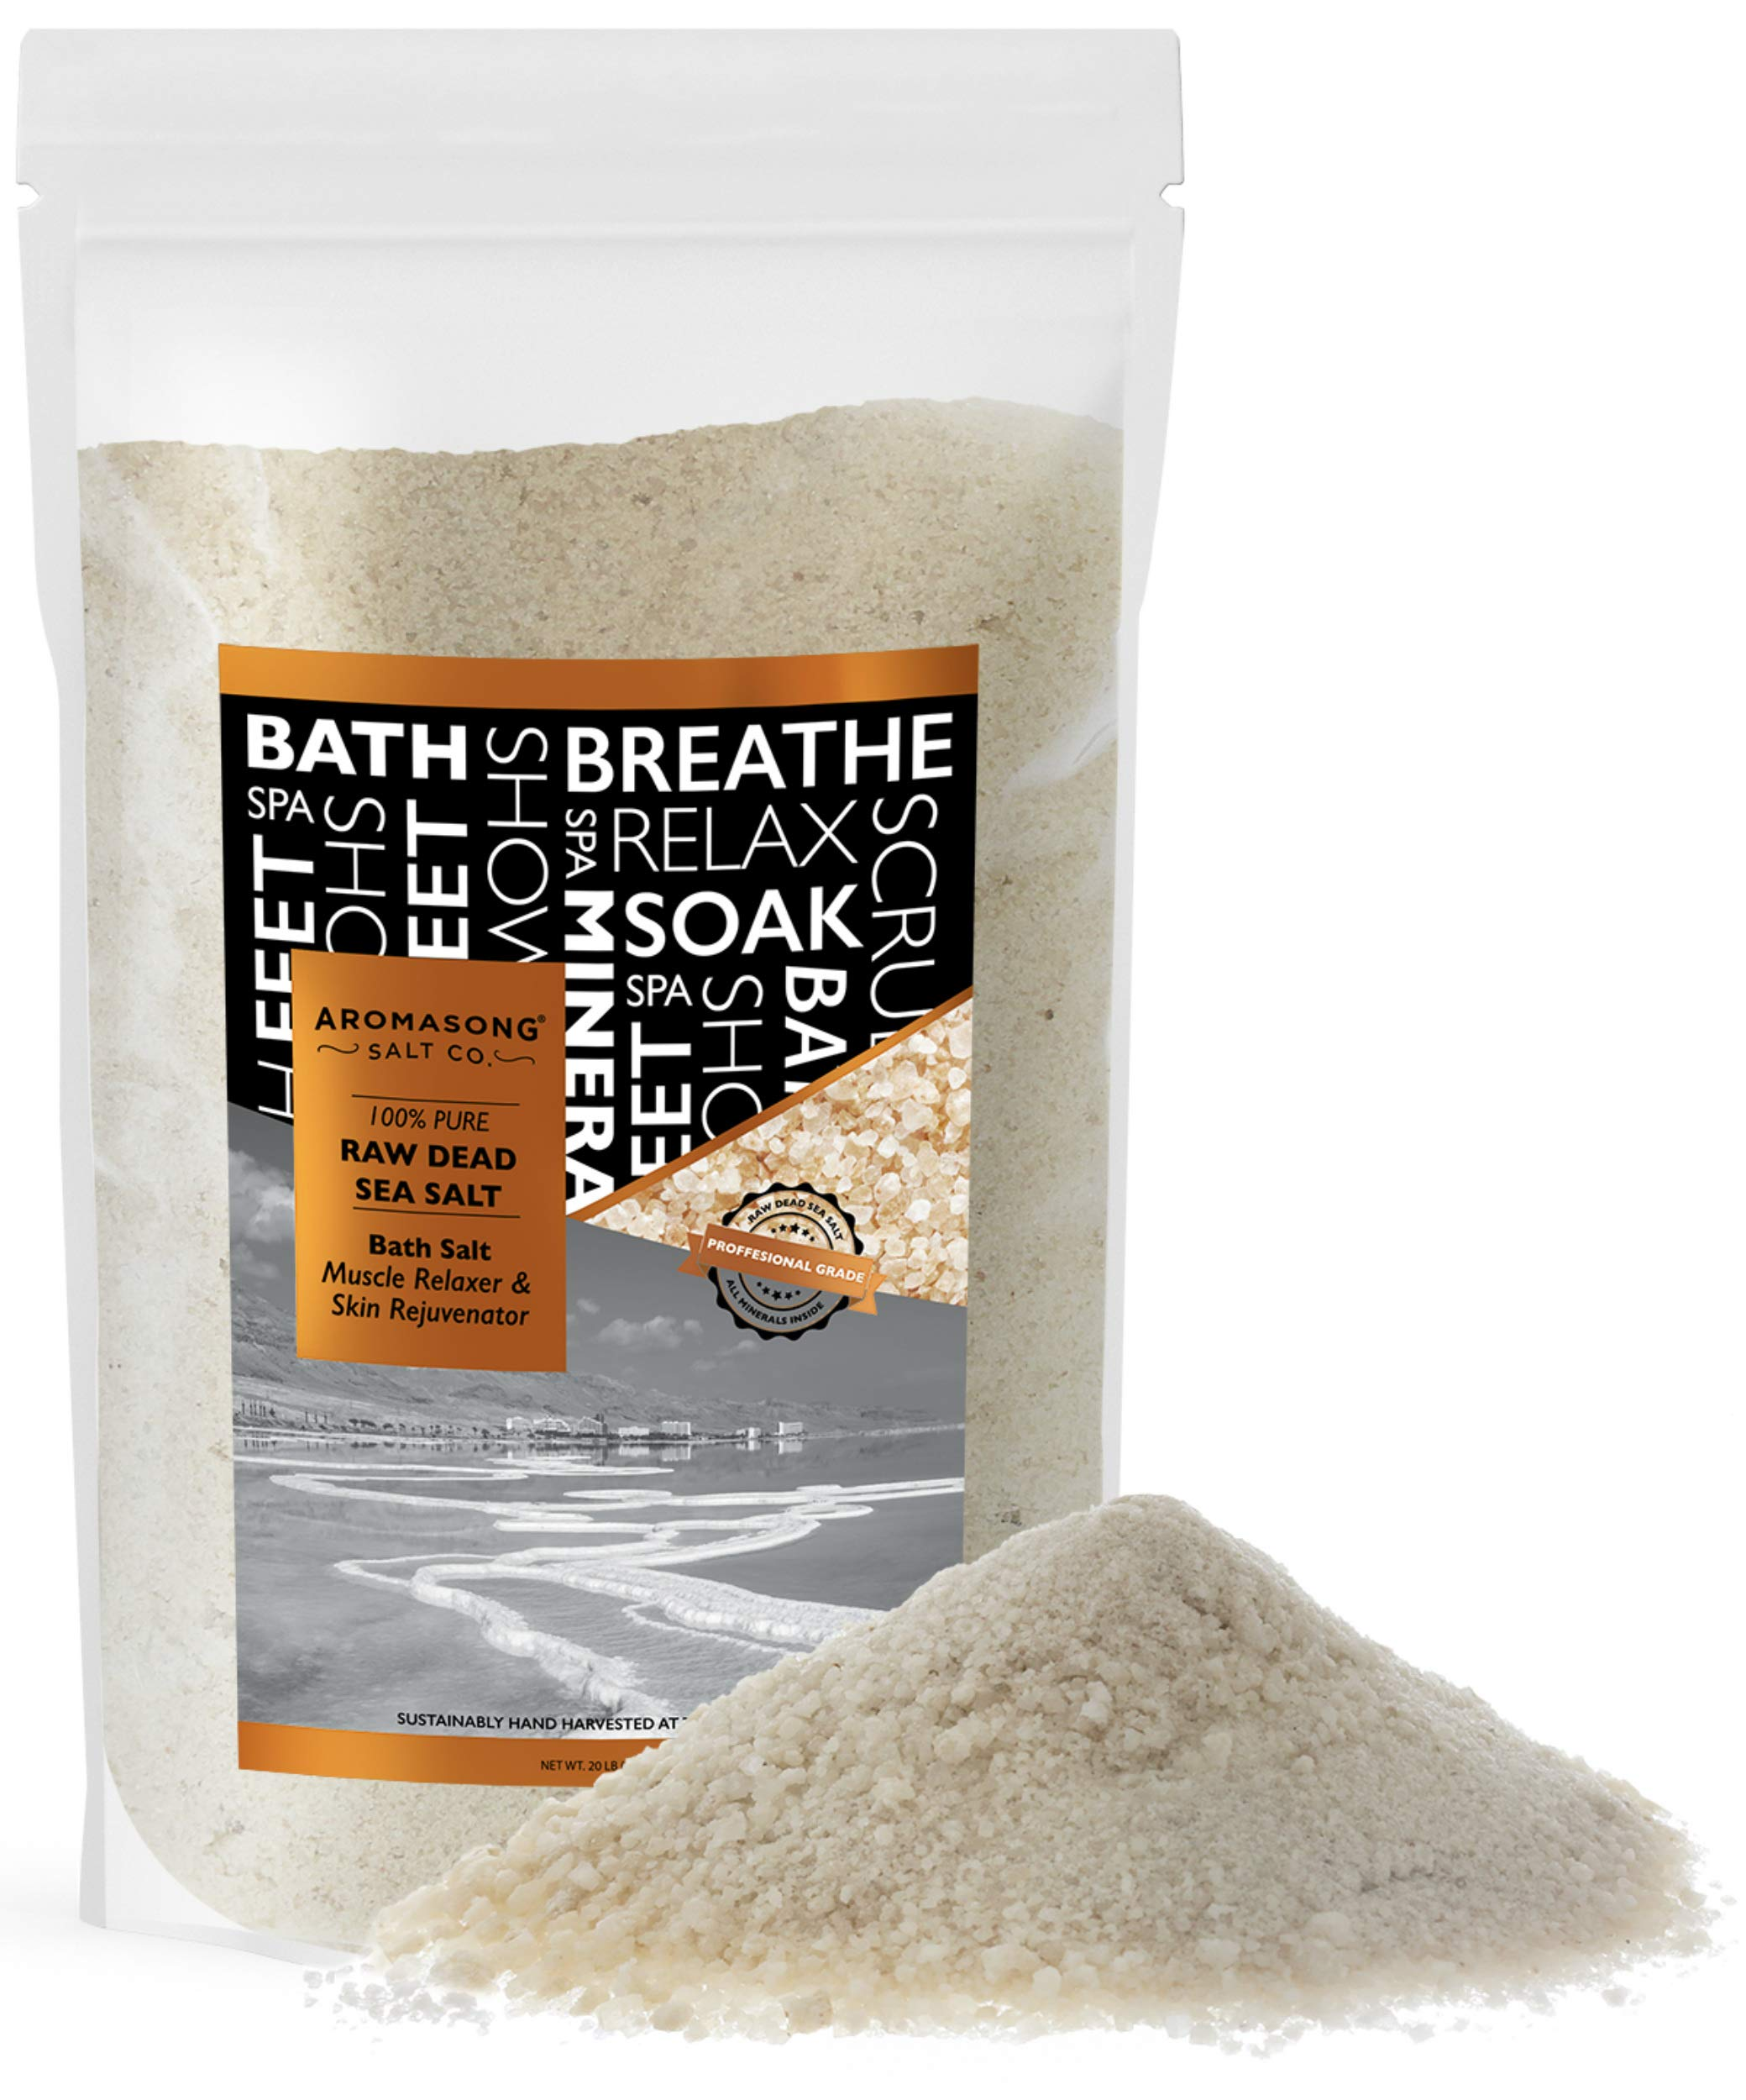 19 lbs Raw DEAD SEA SALT Not cleaned, still Contains all dead sea minerals Including Dead sea Mud, Fine Medium Grain Large resealable Bulk pack, by Aromasong